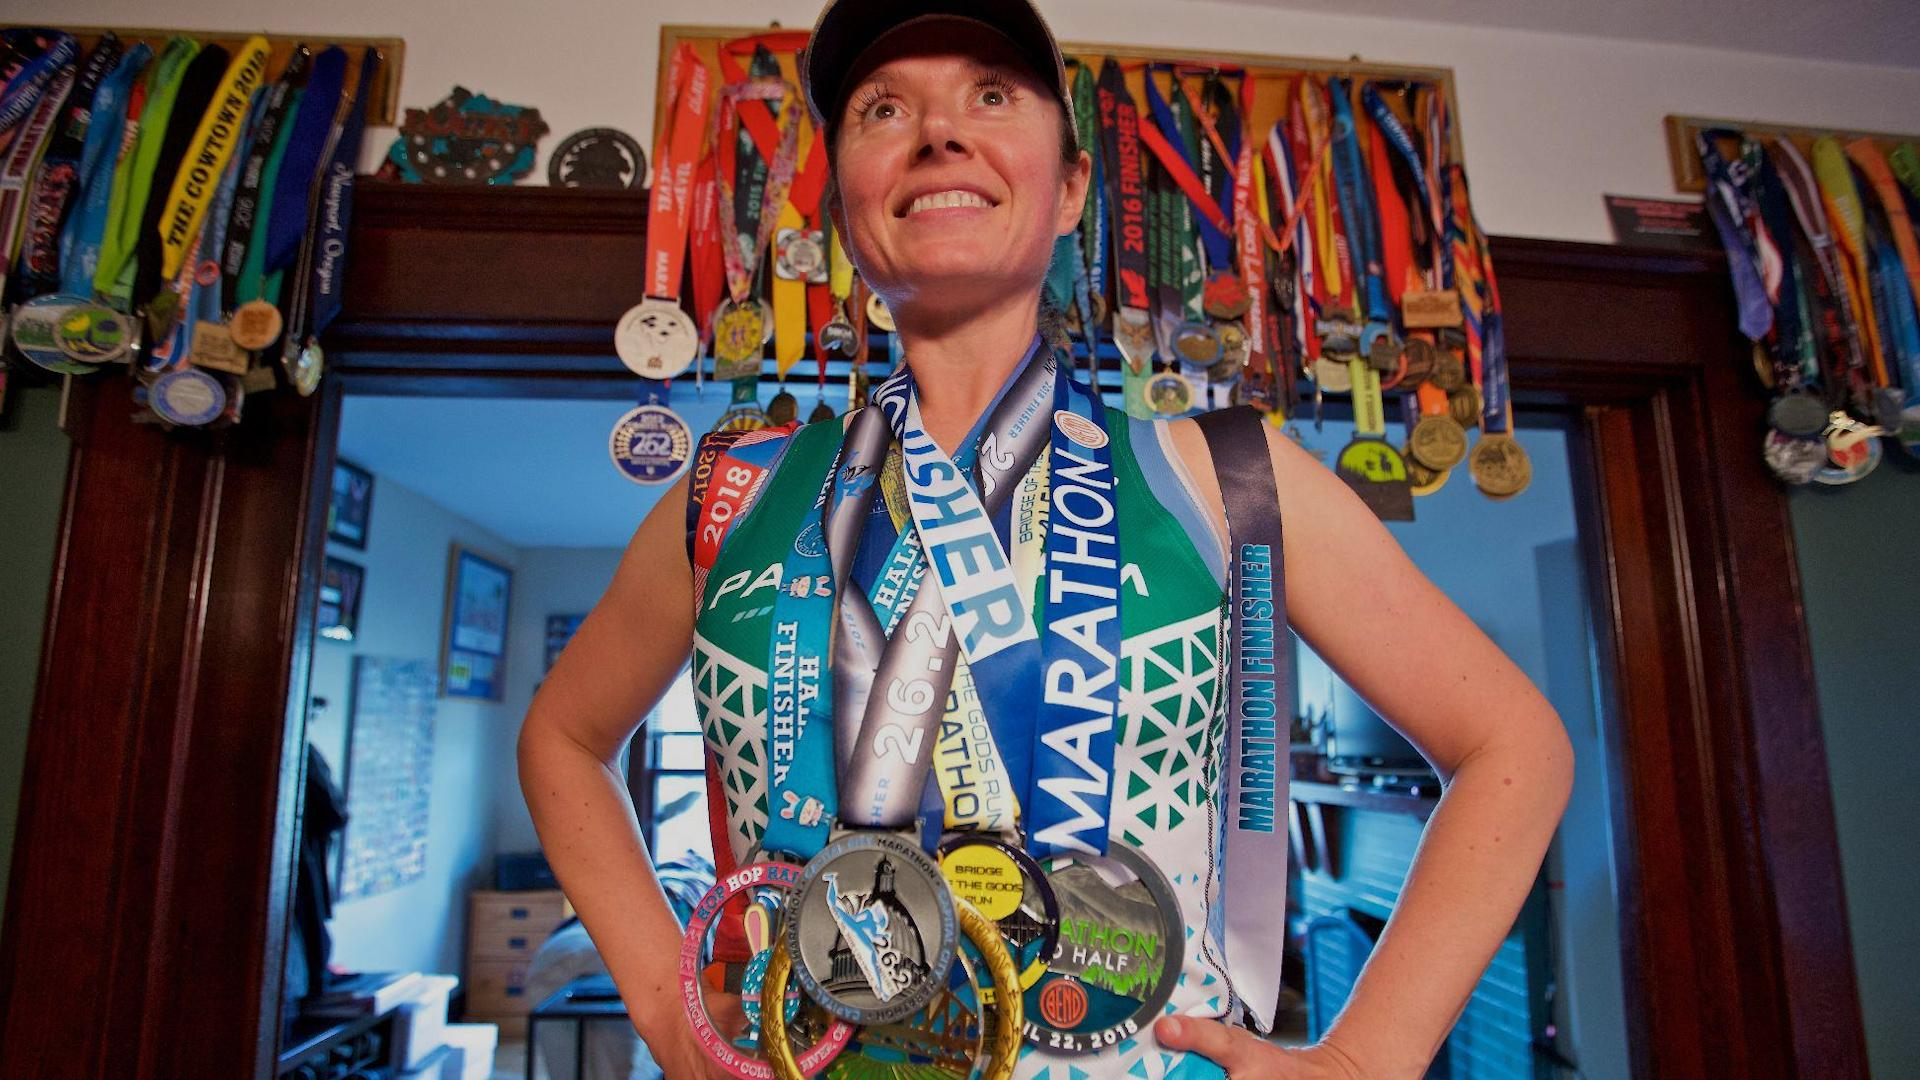 Grandad Who's Run 23 Ultra-Marathons Says Secret Is A Daily Cup Of Hot Chocolate And Wine Gums